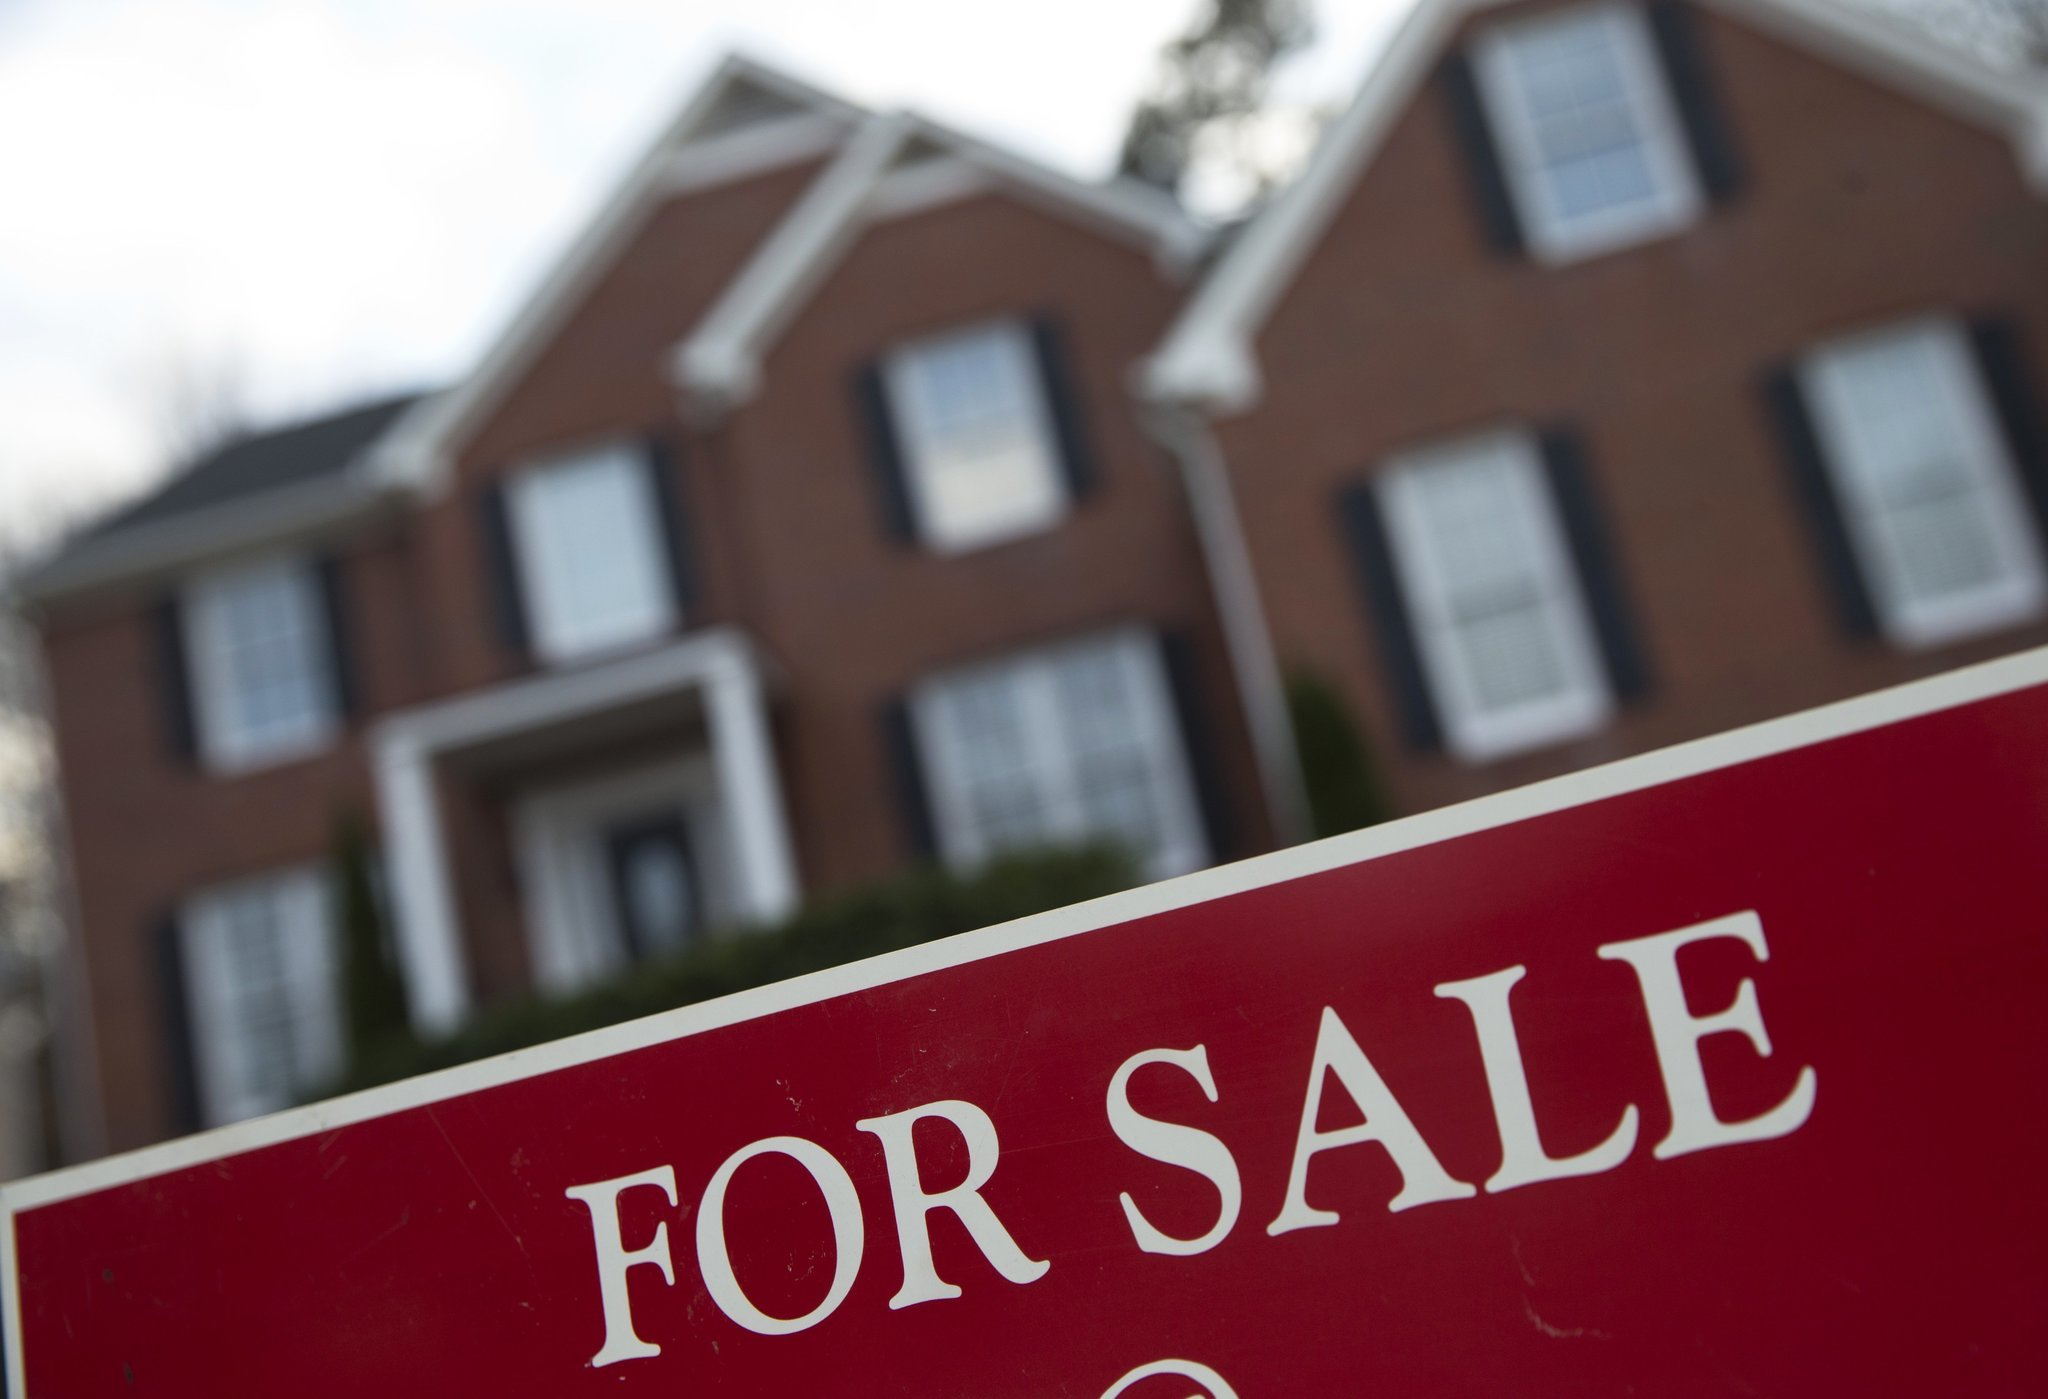 Millennials are walking away from homeownership. And that's a good thing.